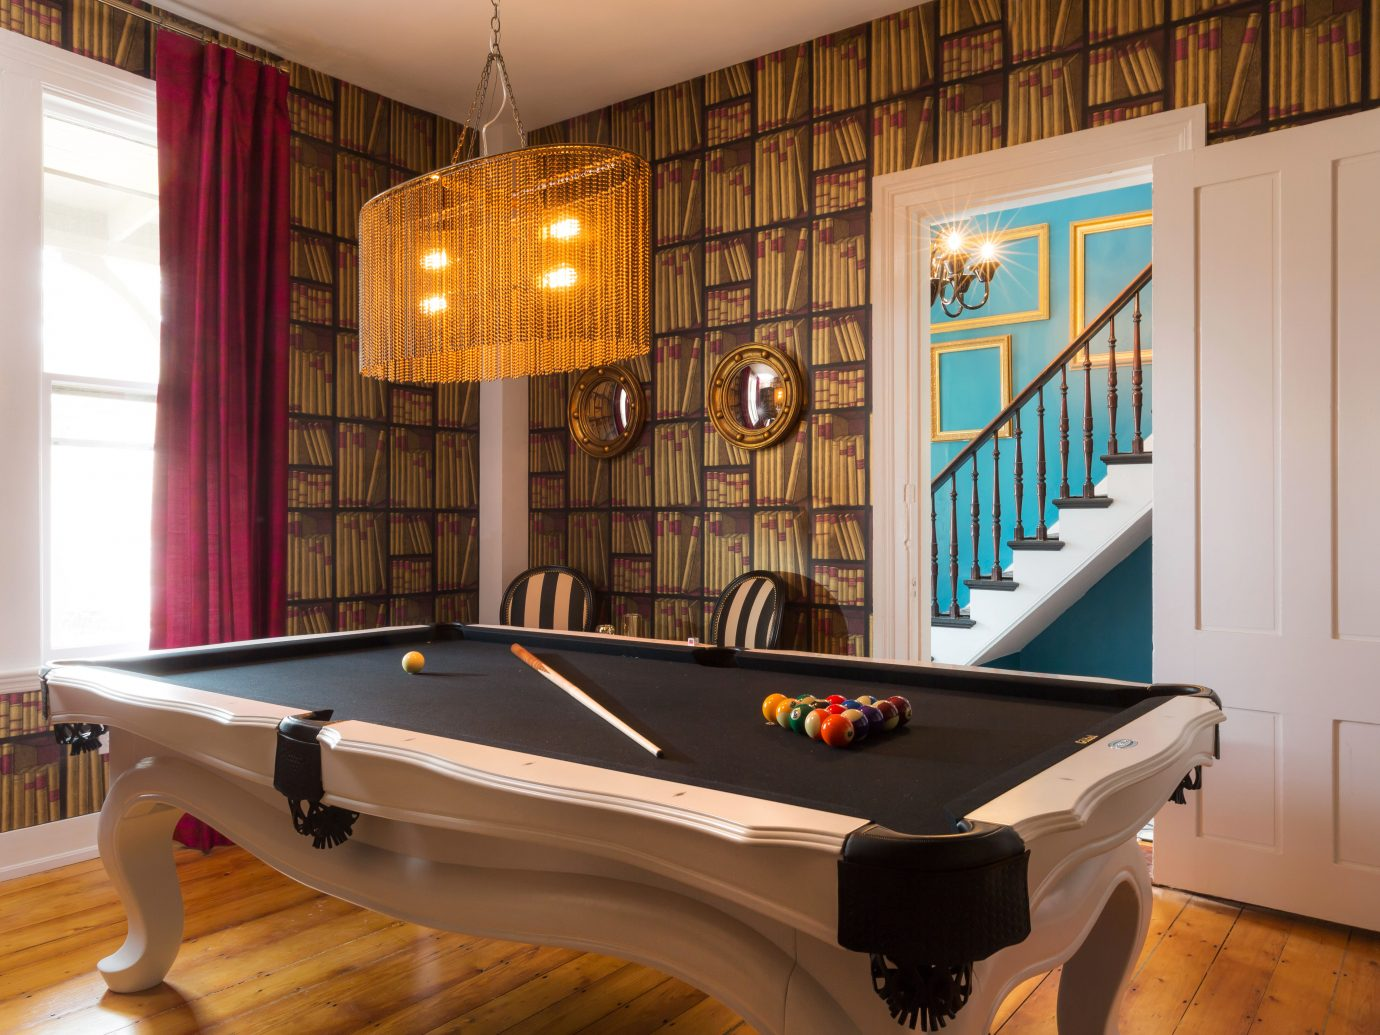 Boutique Budget Hip Hotels Living indoor floor recreation room billiard room room billiard table hardwood interior design estate games table basement real estate